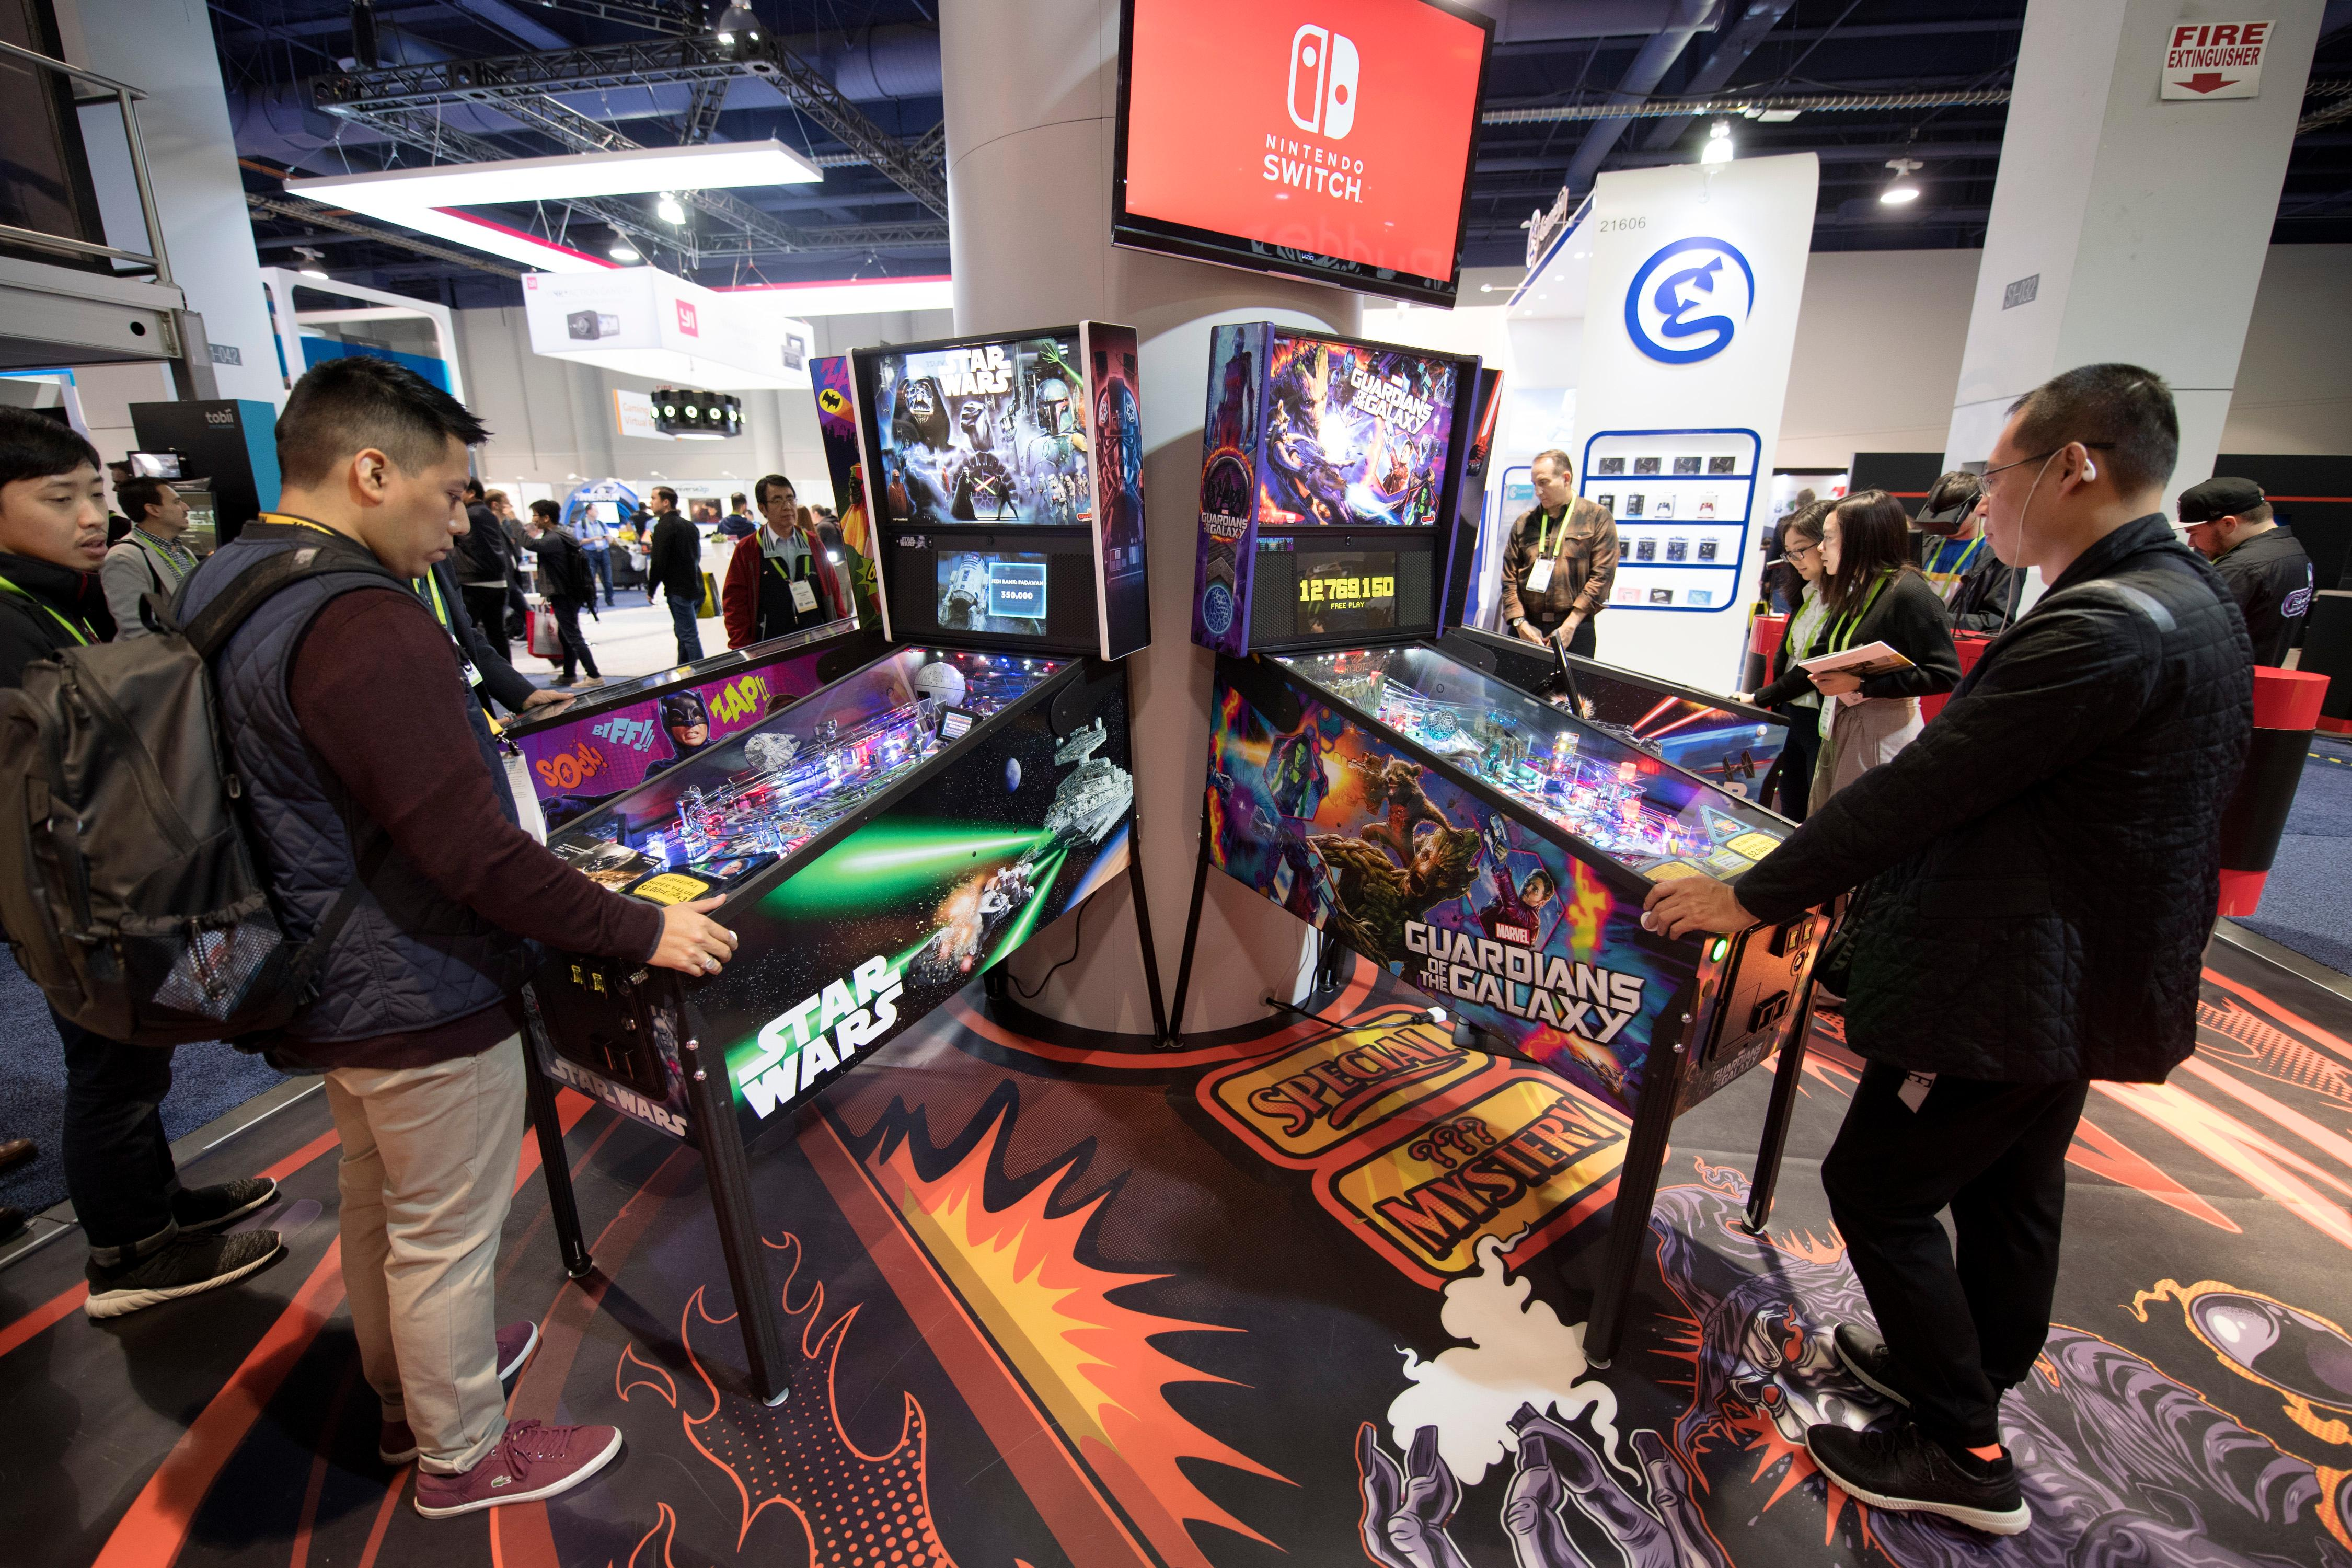 The latest offerings from Stern Pinball are played during the second day of CES Wednesday, January 10, 2018, at the Las Vegas Convention Center. CREDIT: Sam Morris/Las Vegas News Bureau